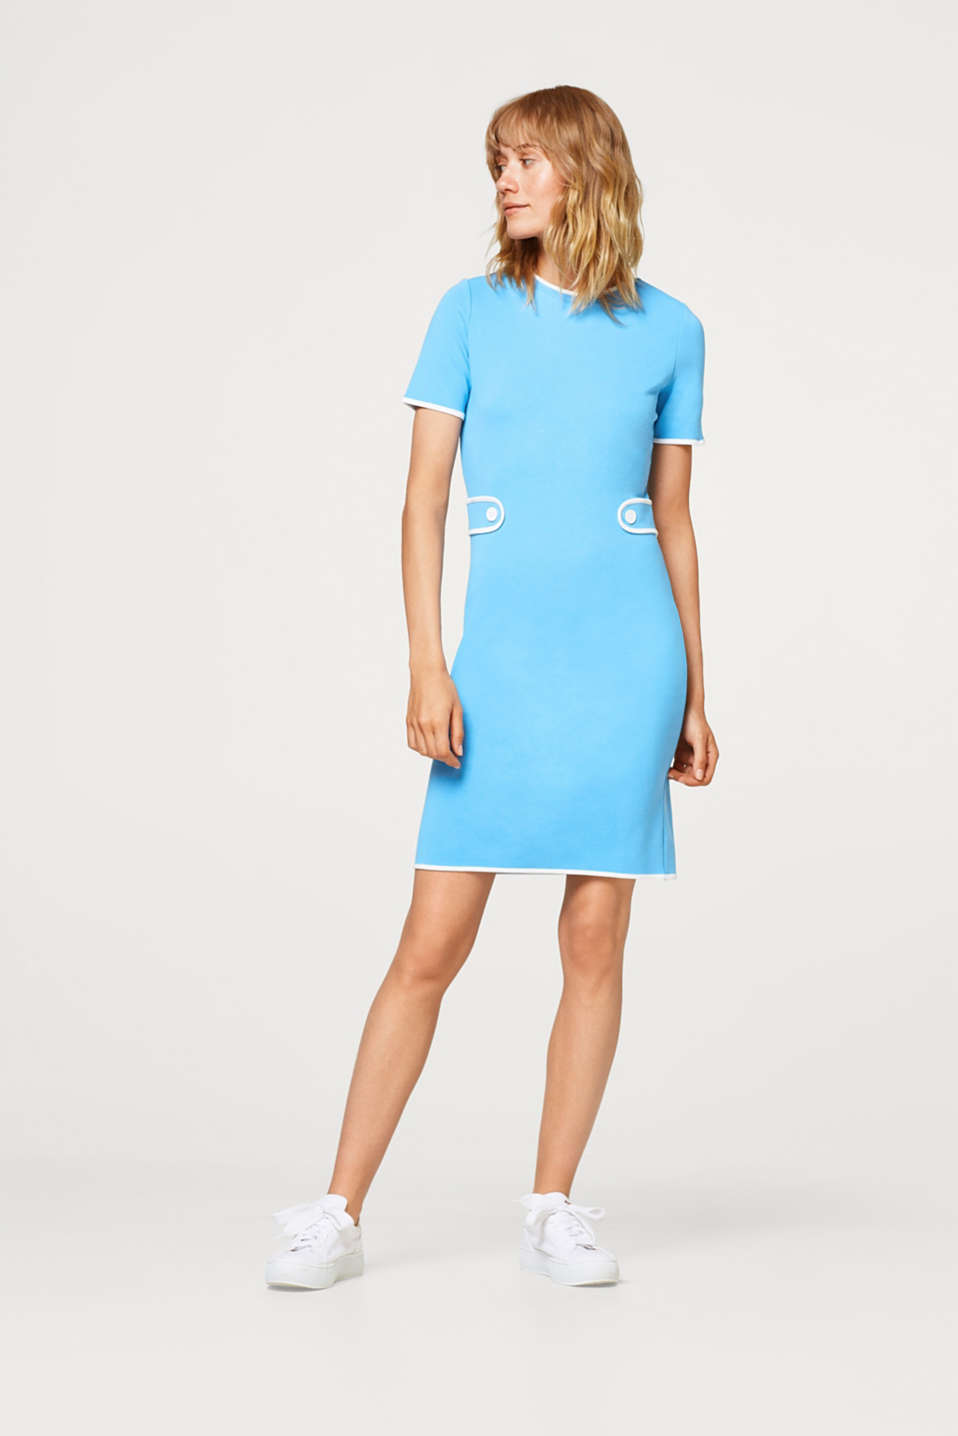 Piped dress in a retro look, stretch jersey